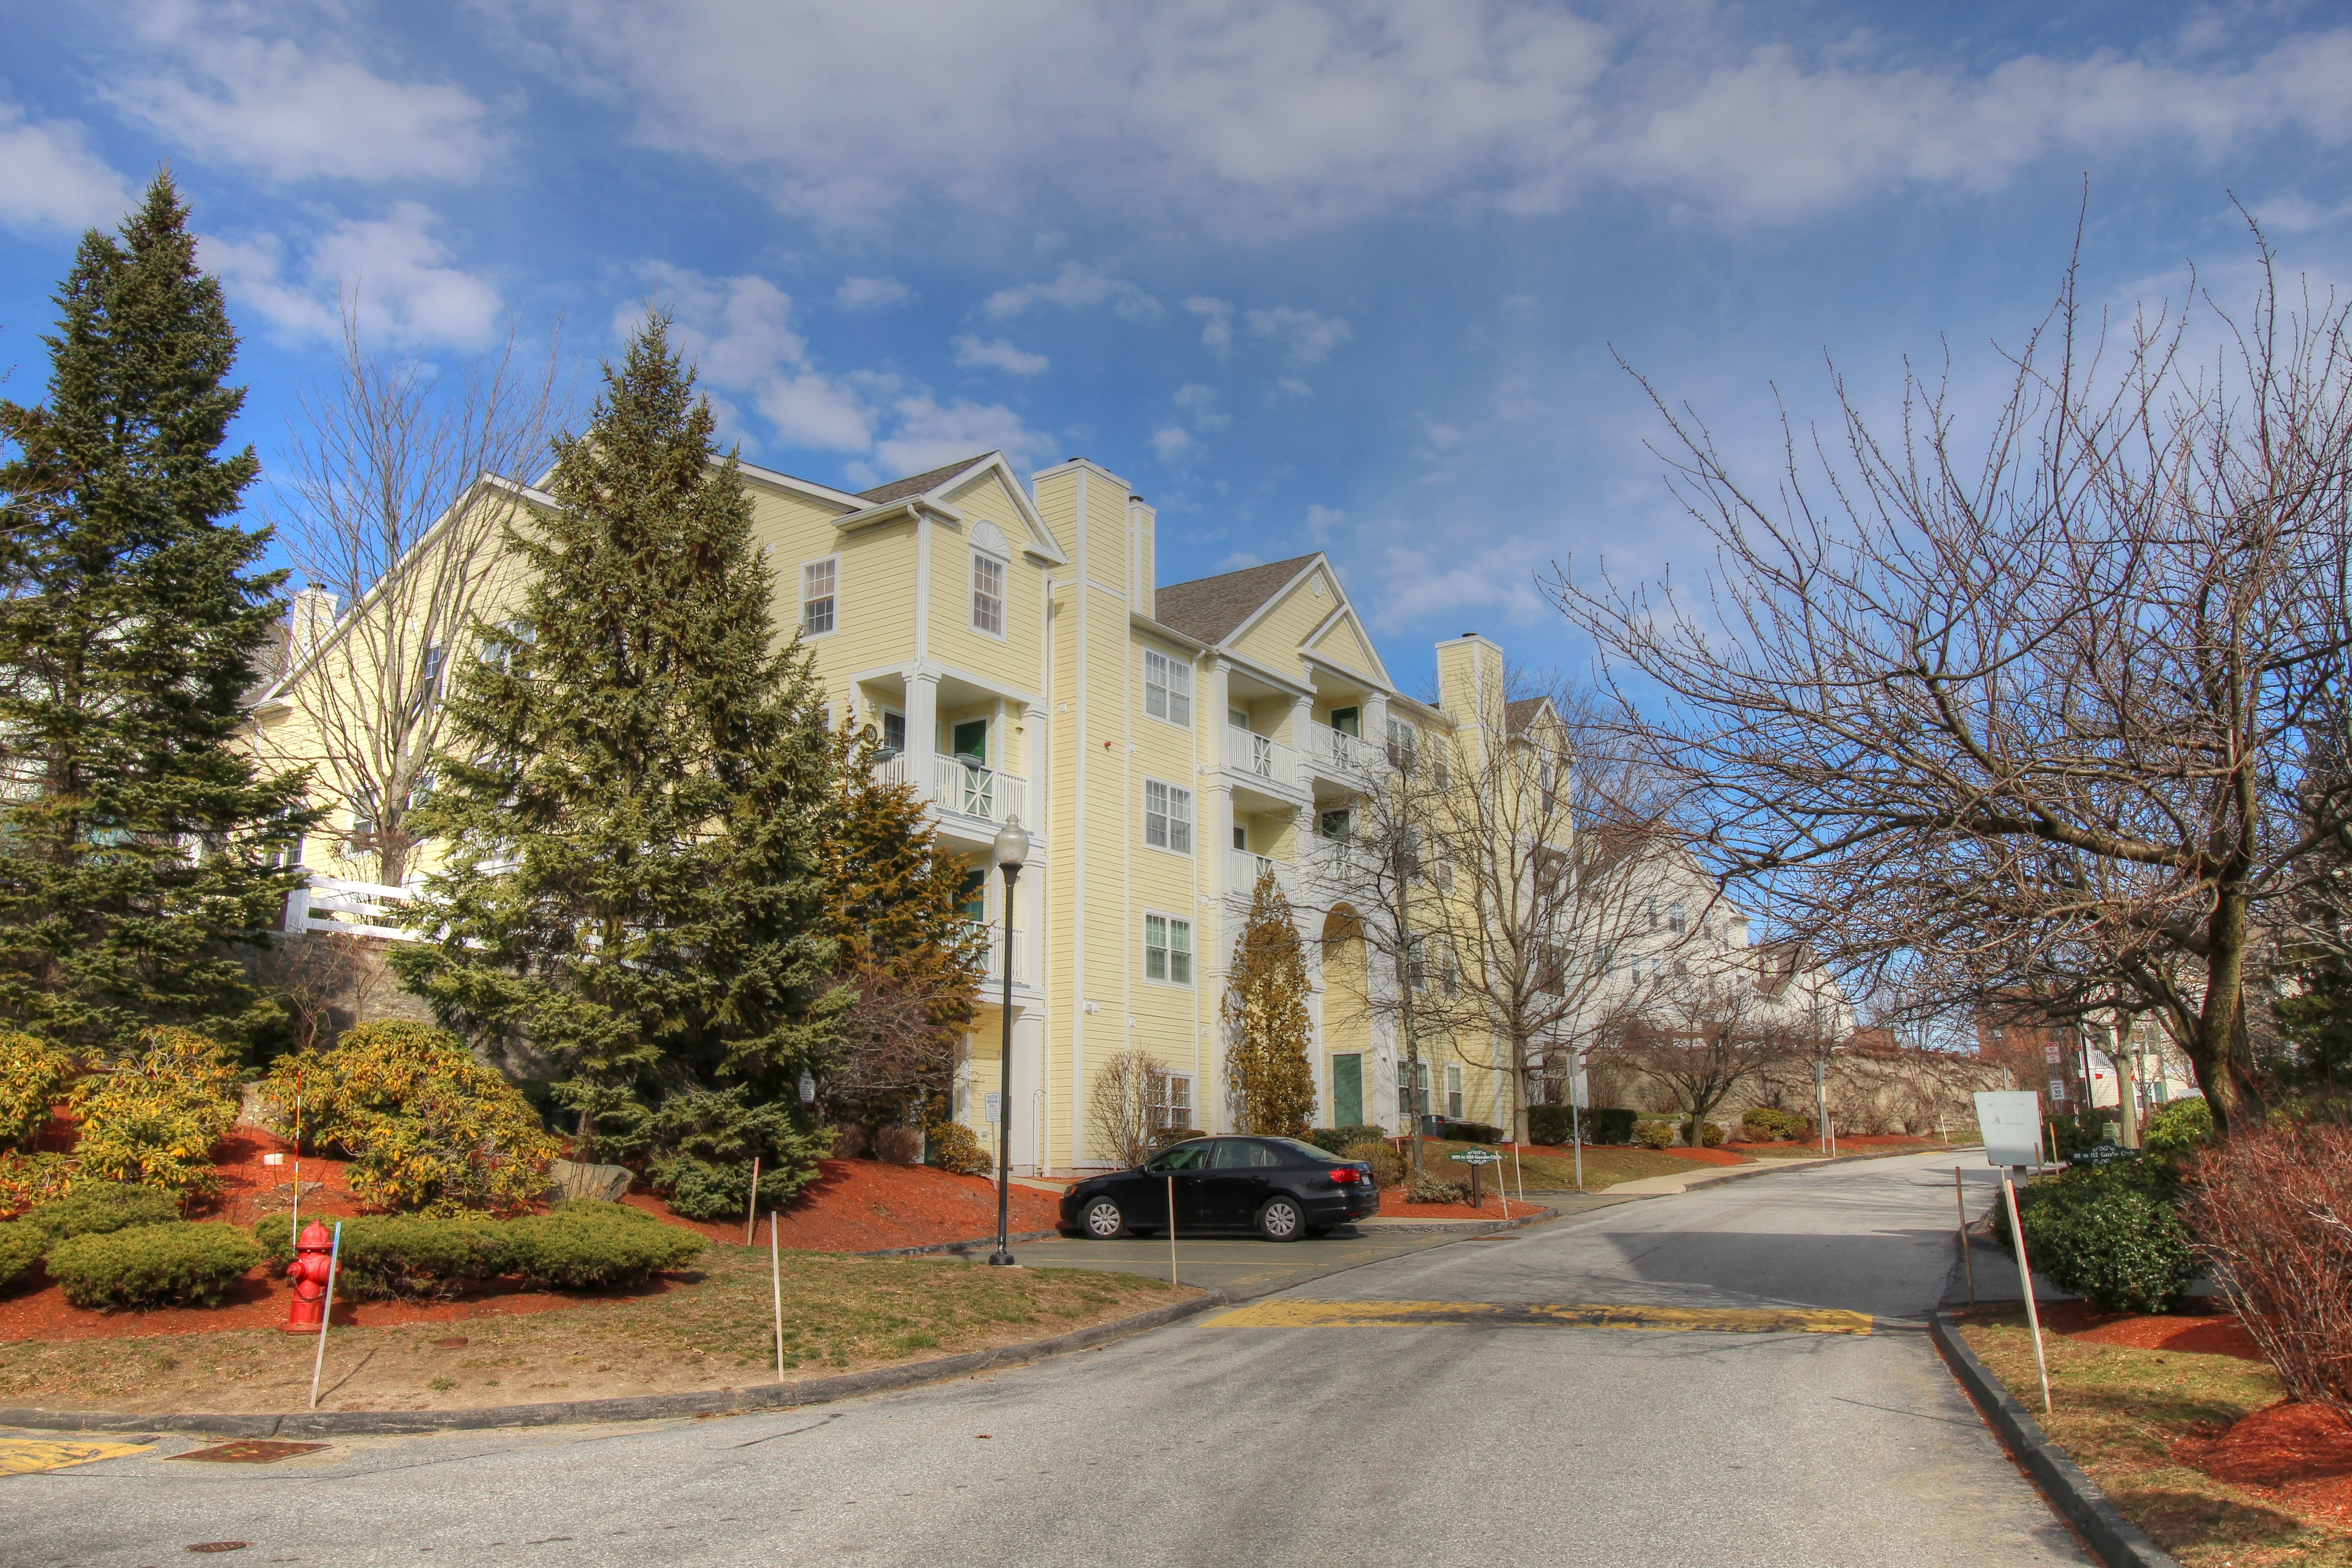 Summit Village Condos Reading MA Current Listings